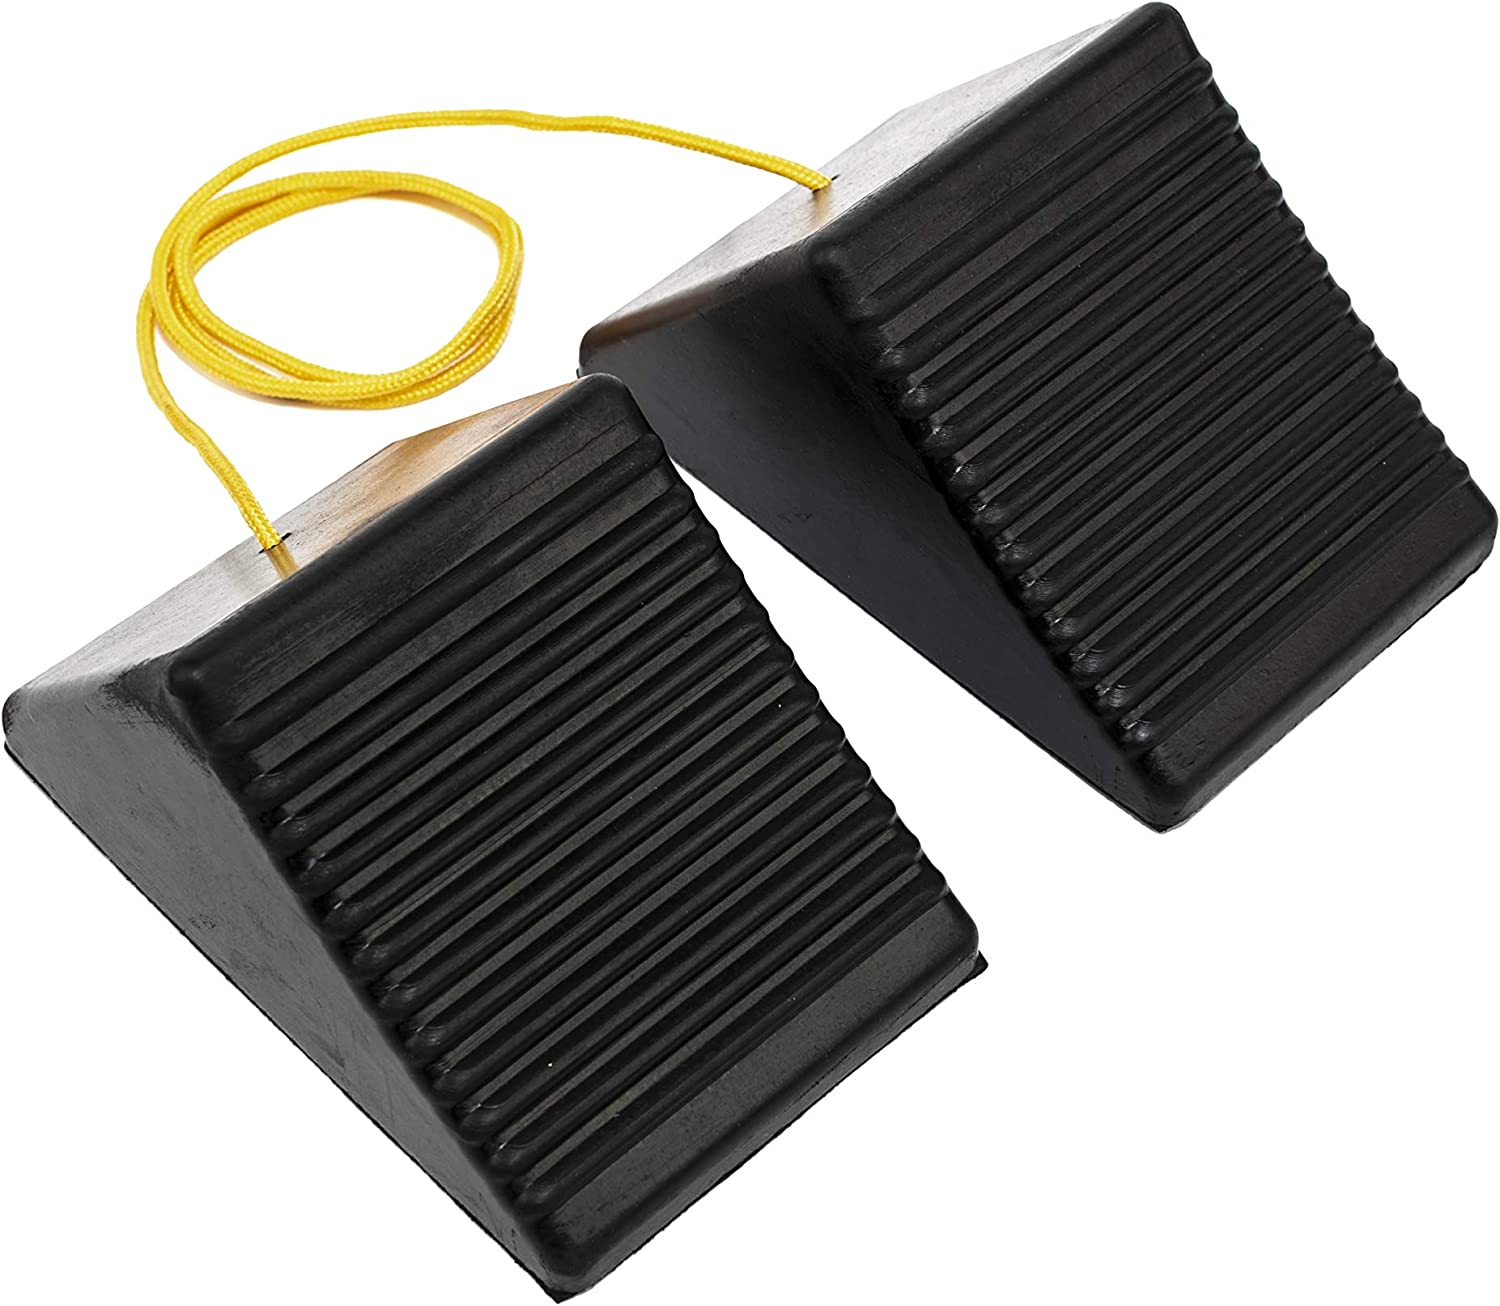 """MaxxHaul 50012 Rubber Wheel Chock with Rope - 8"""" x 5"""" x 4"""" - 2 Pack,"""